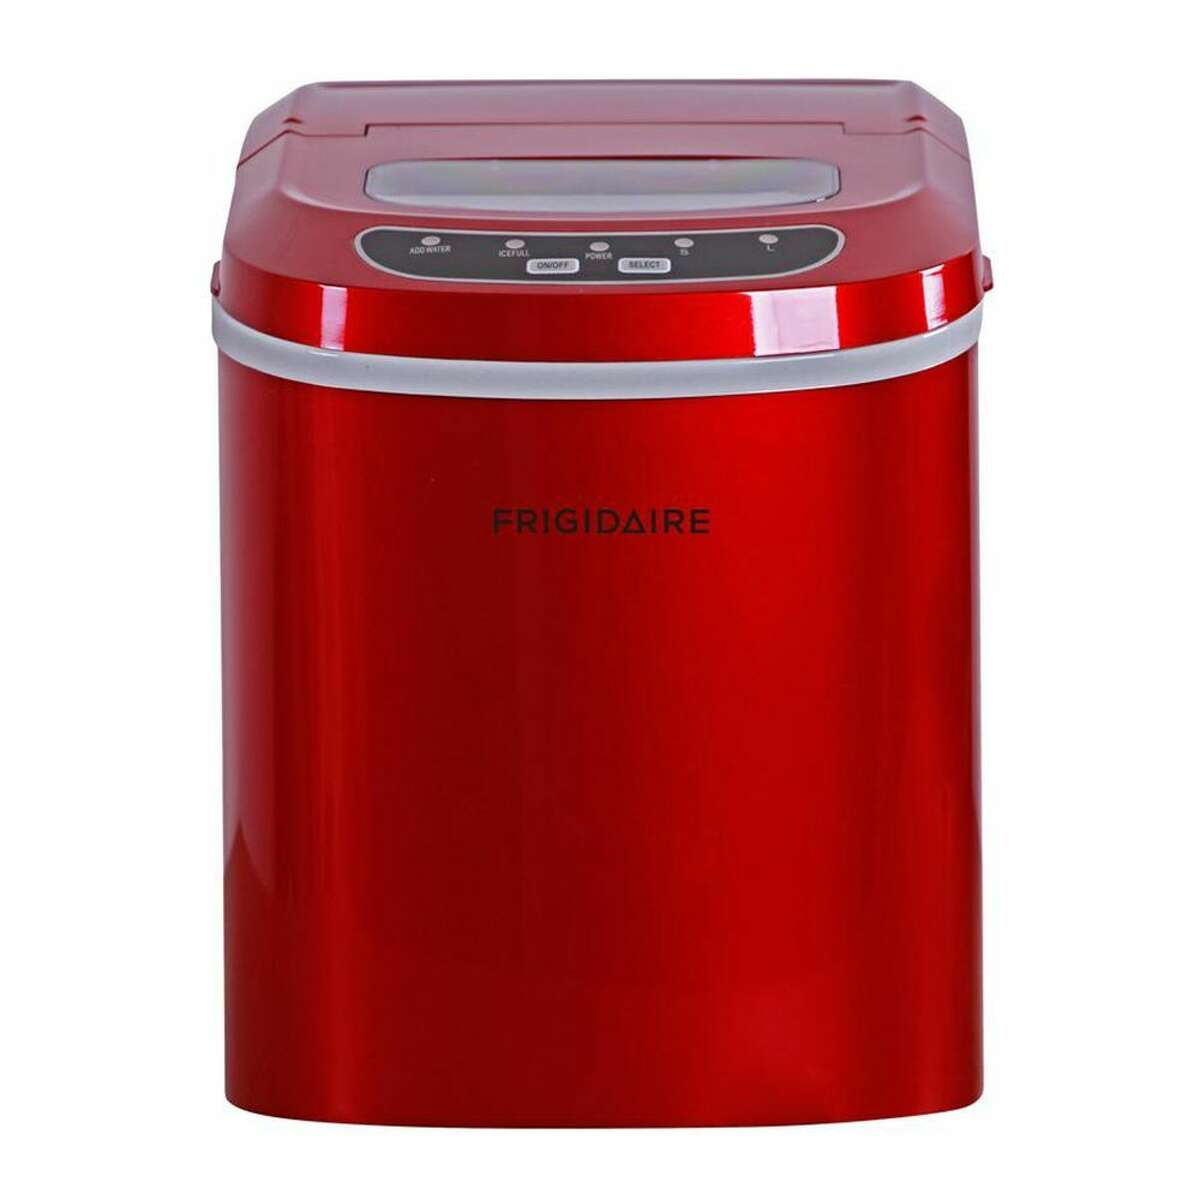 2) Frigidaire EFIC108 Portable Ice Maker: $109.99 Shop Now We get it, when you want ice... you want it RIGHT NOW. The Frigidaire EFIC108 is a beast at cranking out the cubes. During Wirecutter's tests with the ice maker, the unit made enough ice for two drinks in seven minutes, and enough for 15 drinks within an hour. Besides its speed, we like how compact and lightweight this portable ice maker is. Weighing in at less than 20 pounds, it's easy to carry or it'll fit on any countertop. Plus, it has a large see-through window so you can see how much ice is left without opening the lid. This model produces up to 26 pounds of ice in a day and it has a mesh filter to keep debris out of your ice. If you don't like this models bright red aesthetic, consider the similar COSTWAY ice maker, instead which comes in four additional color options.